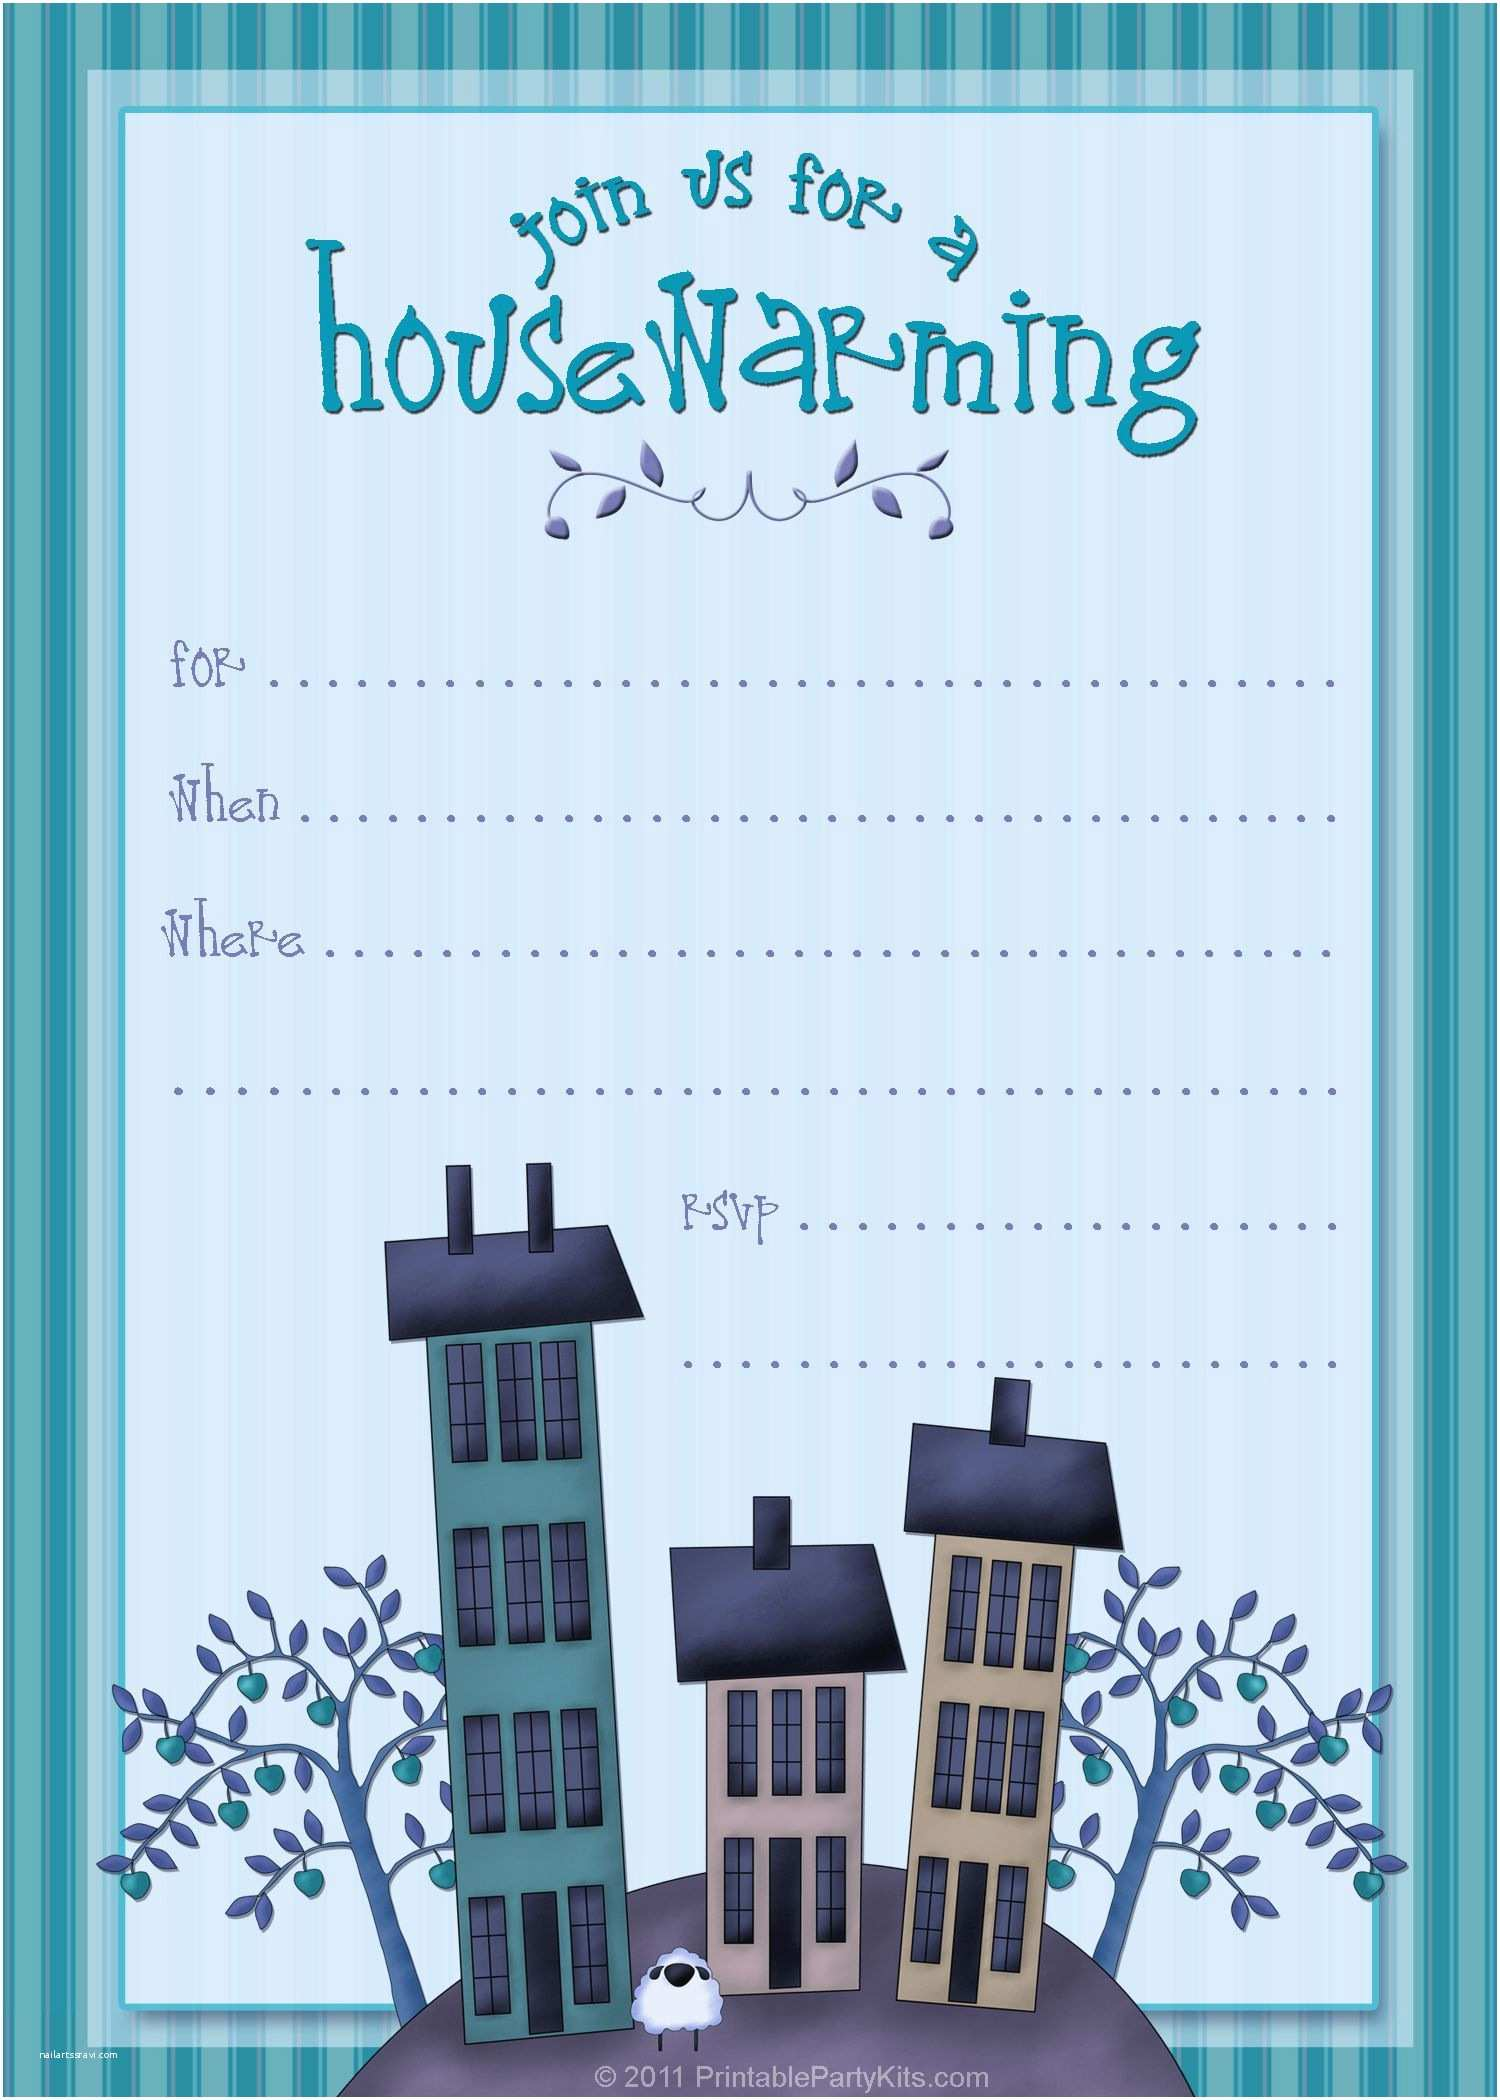 Housewarming Party Invites Housewarming Invitations Cards Housewarming Invitation